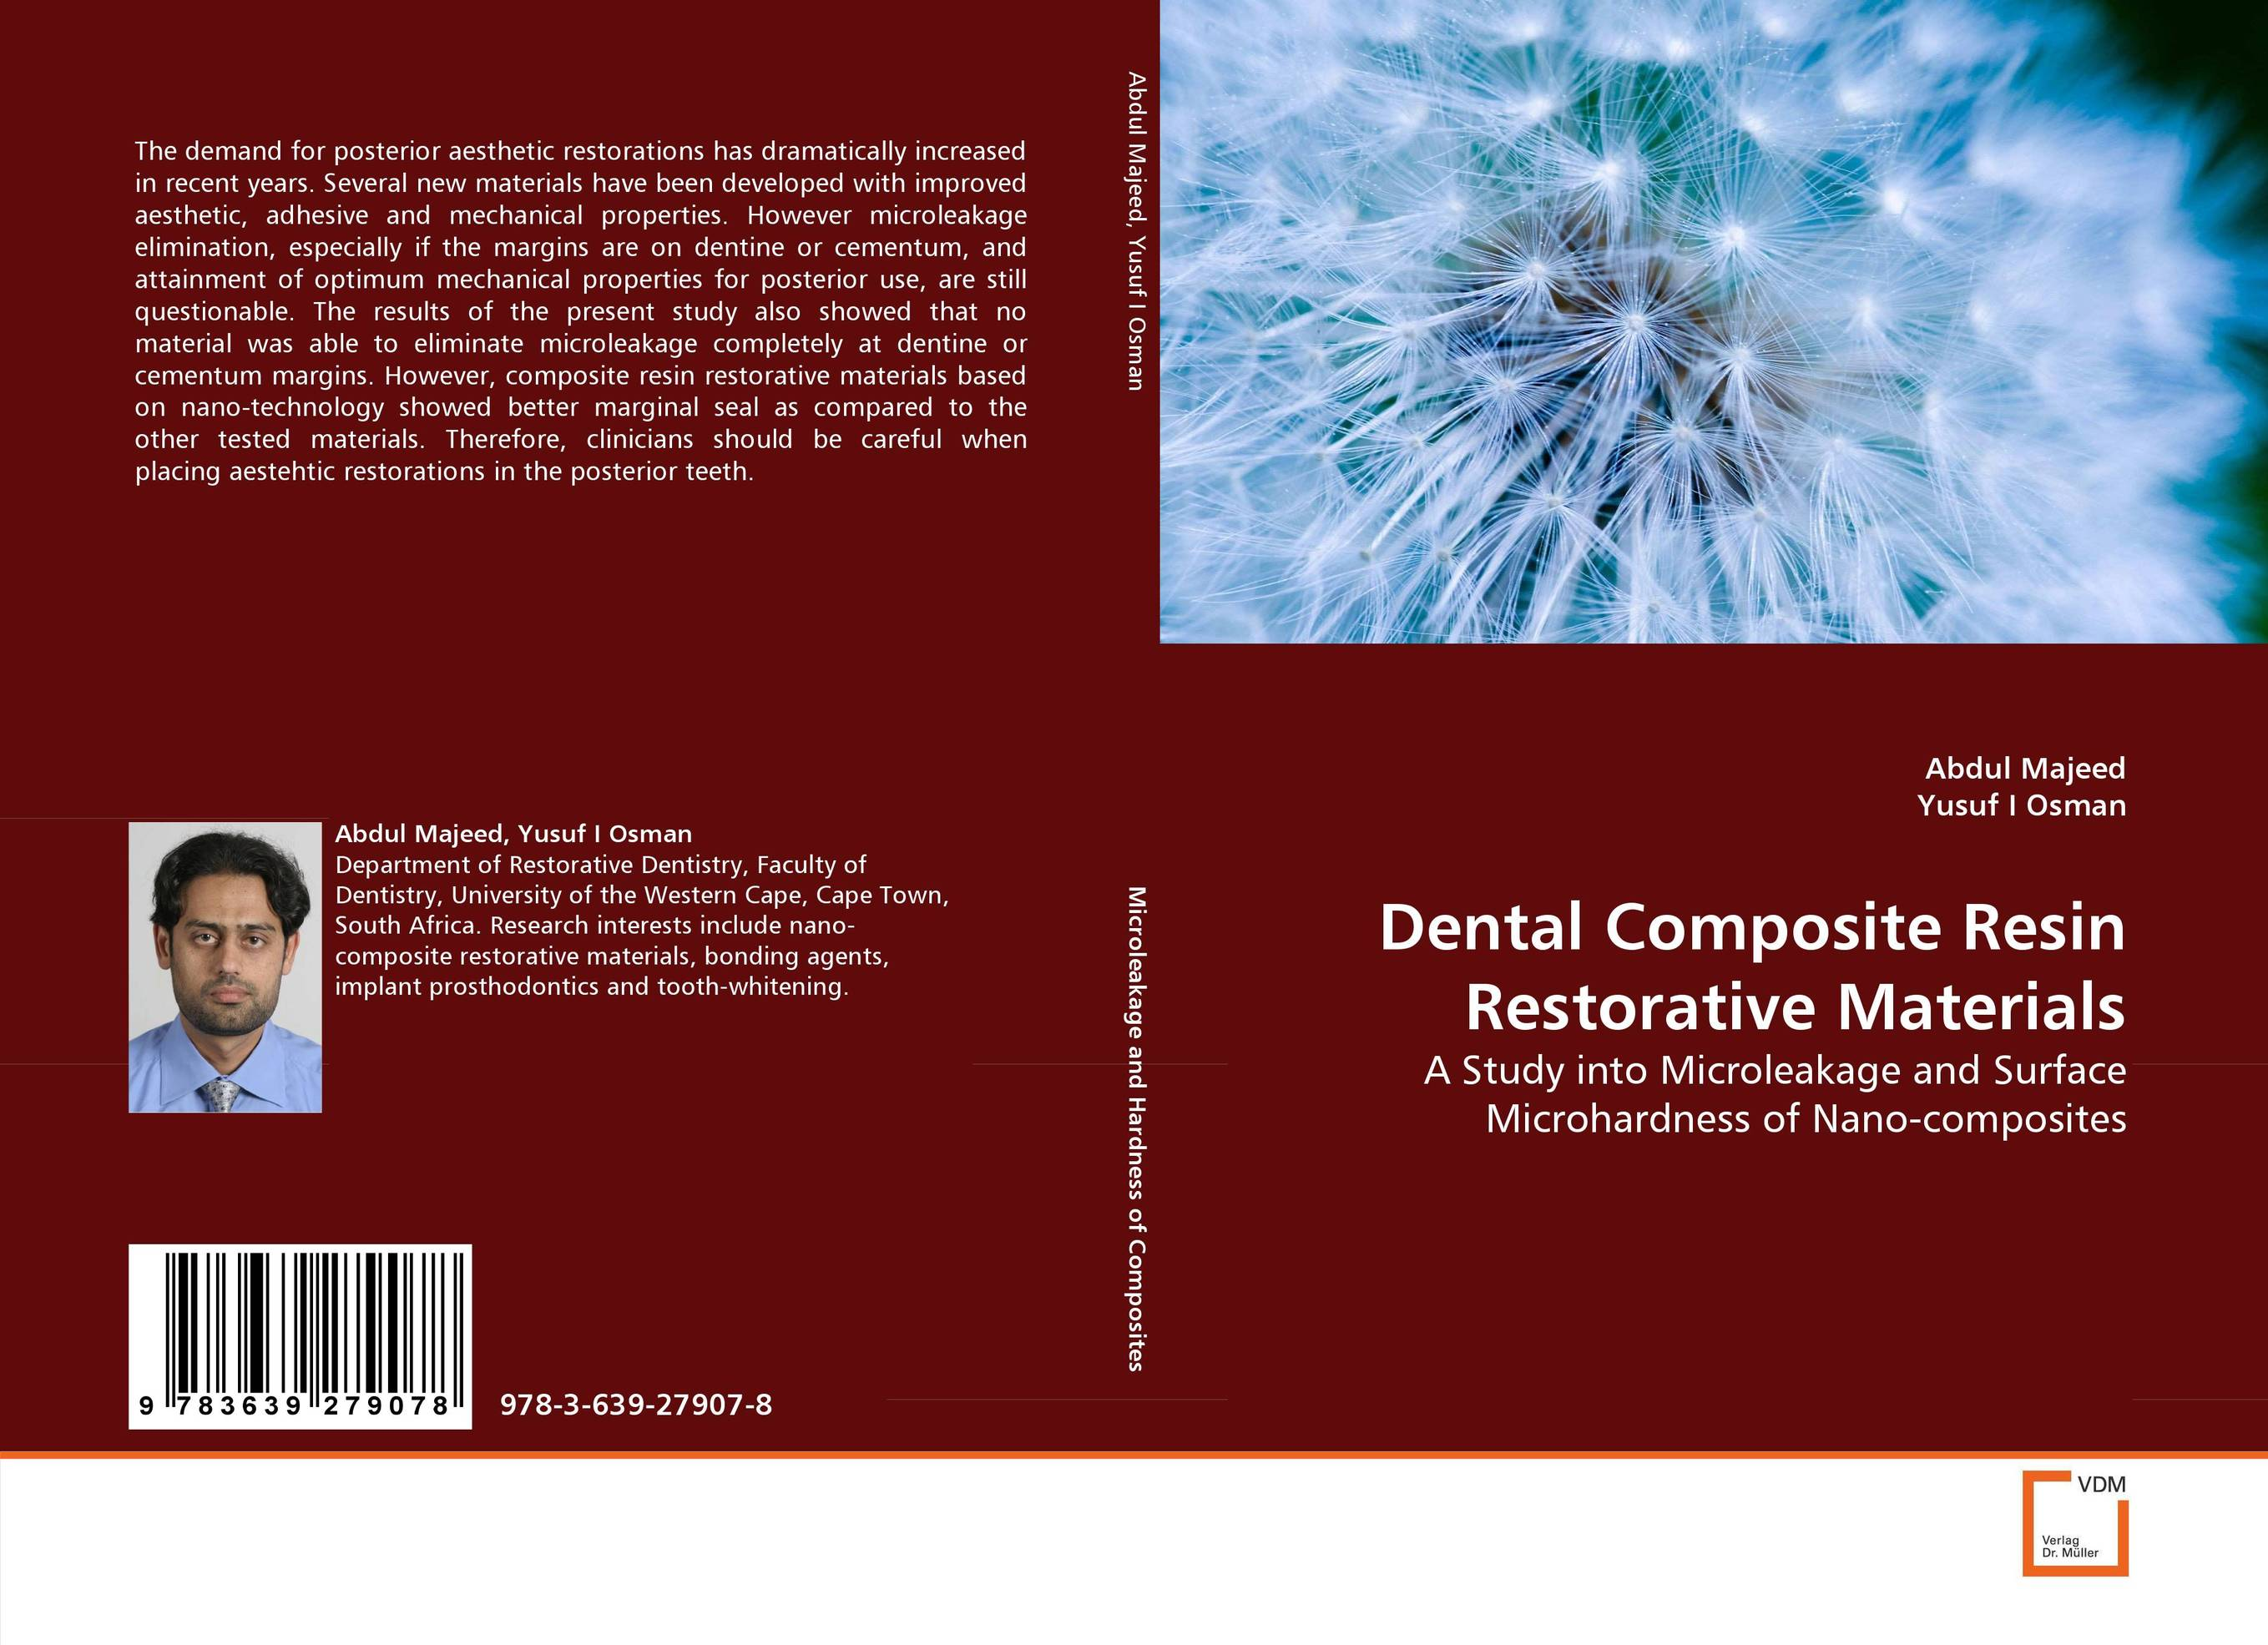 Dental Composite Resin Restorative Materials restorative justice for juveniles